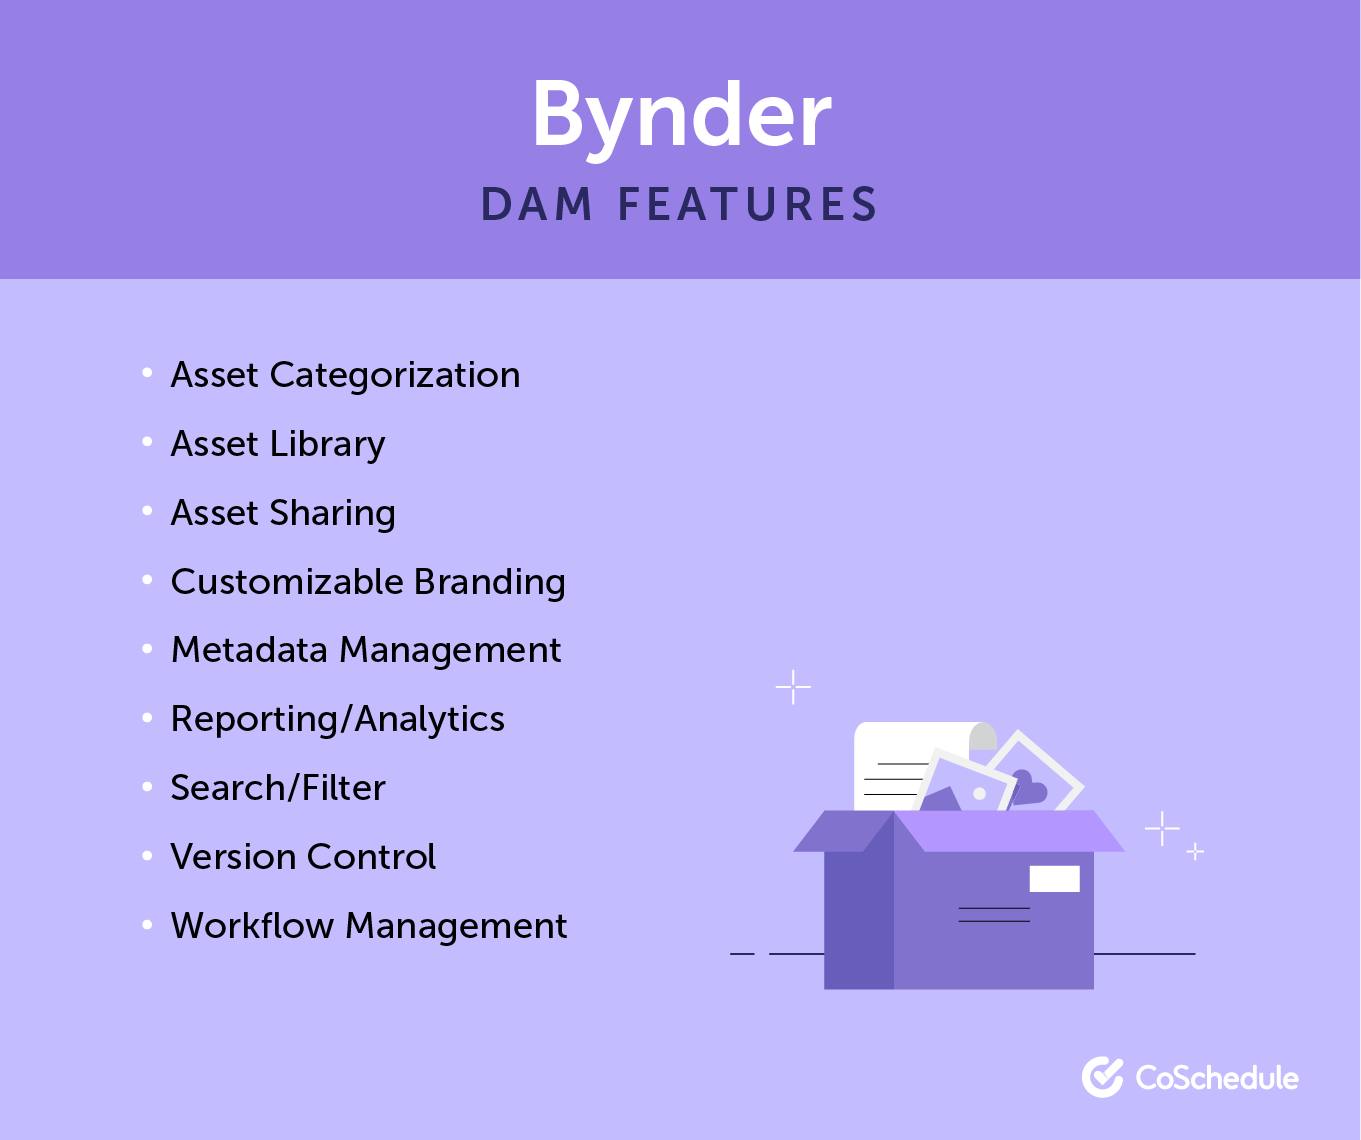 Bynder DAM Features